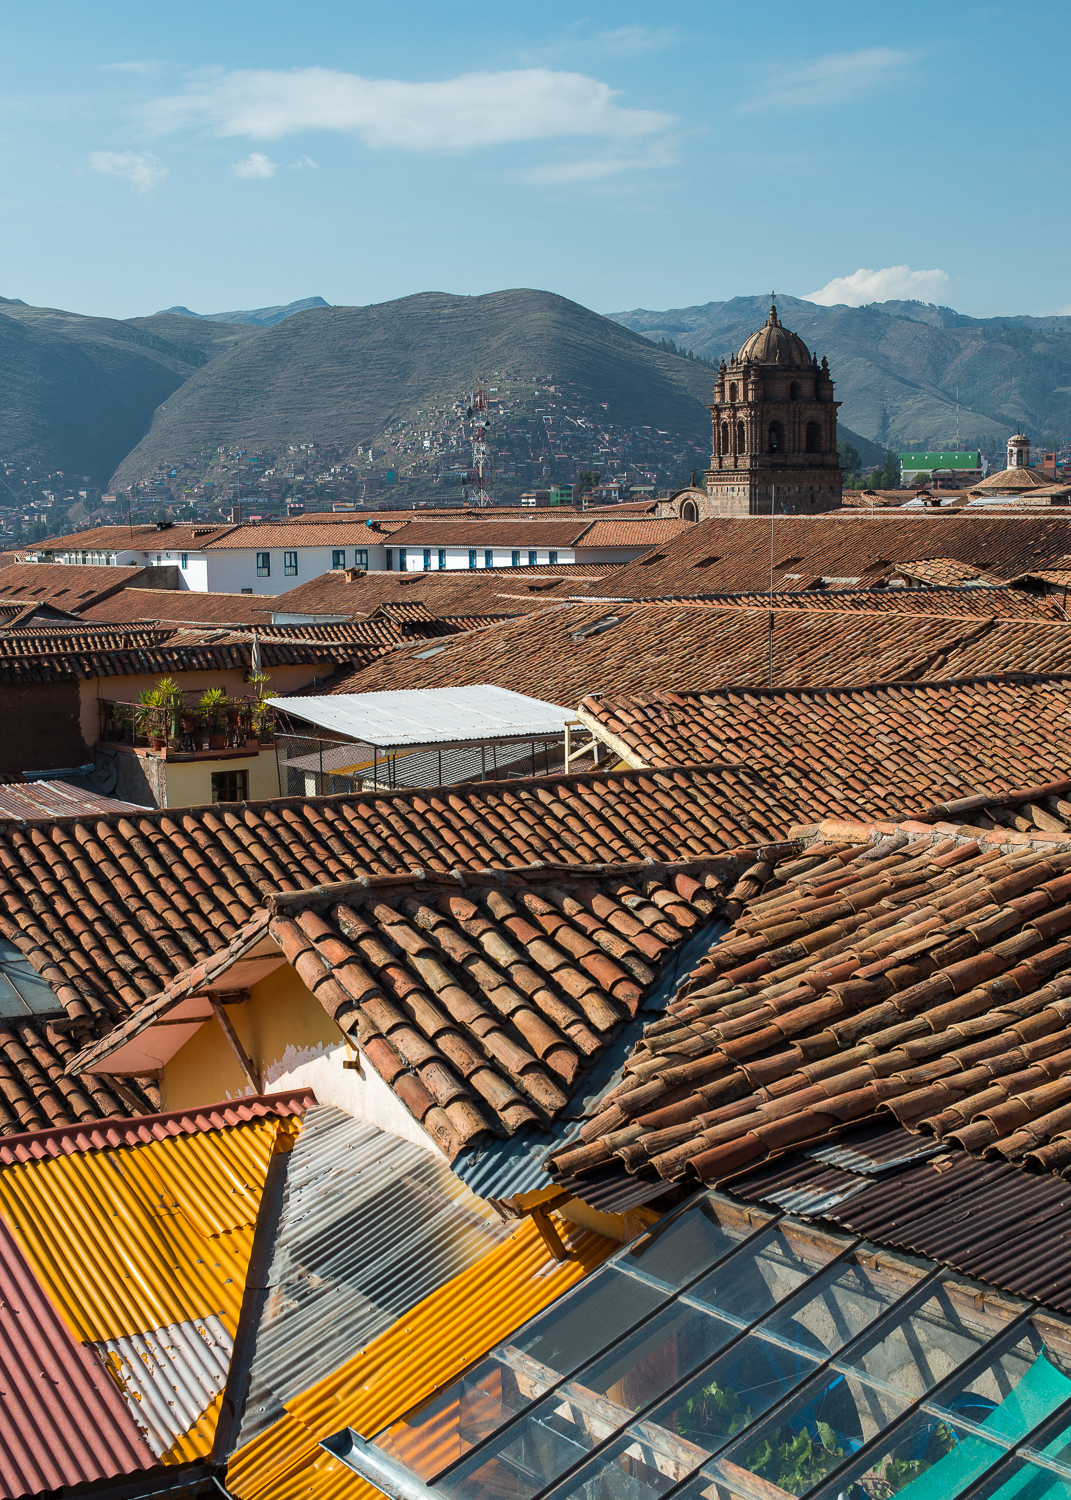 Church of Cusco above the city rooflines.